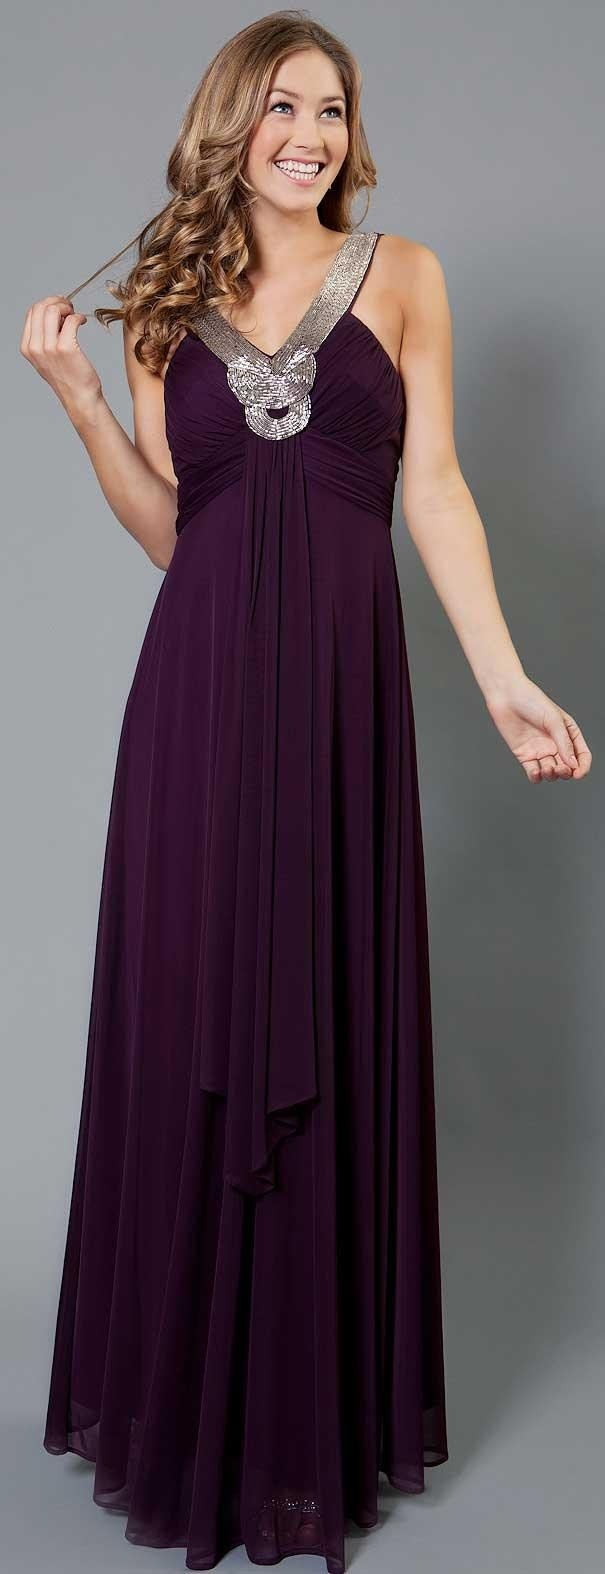 Long Formal Dress With Embellished Neckline  ღ♥Please feel free to repin ♥ღ www.fashionandclothingblog.com